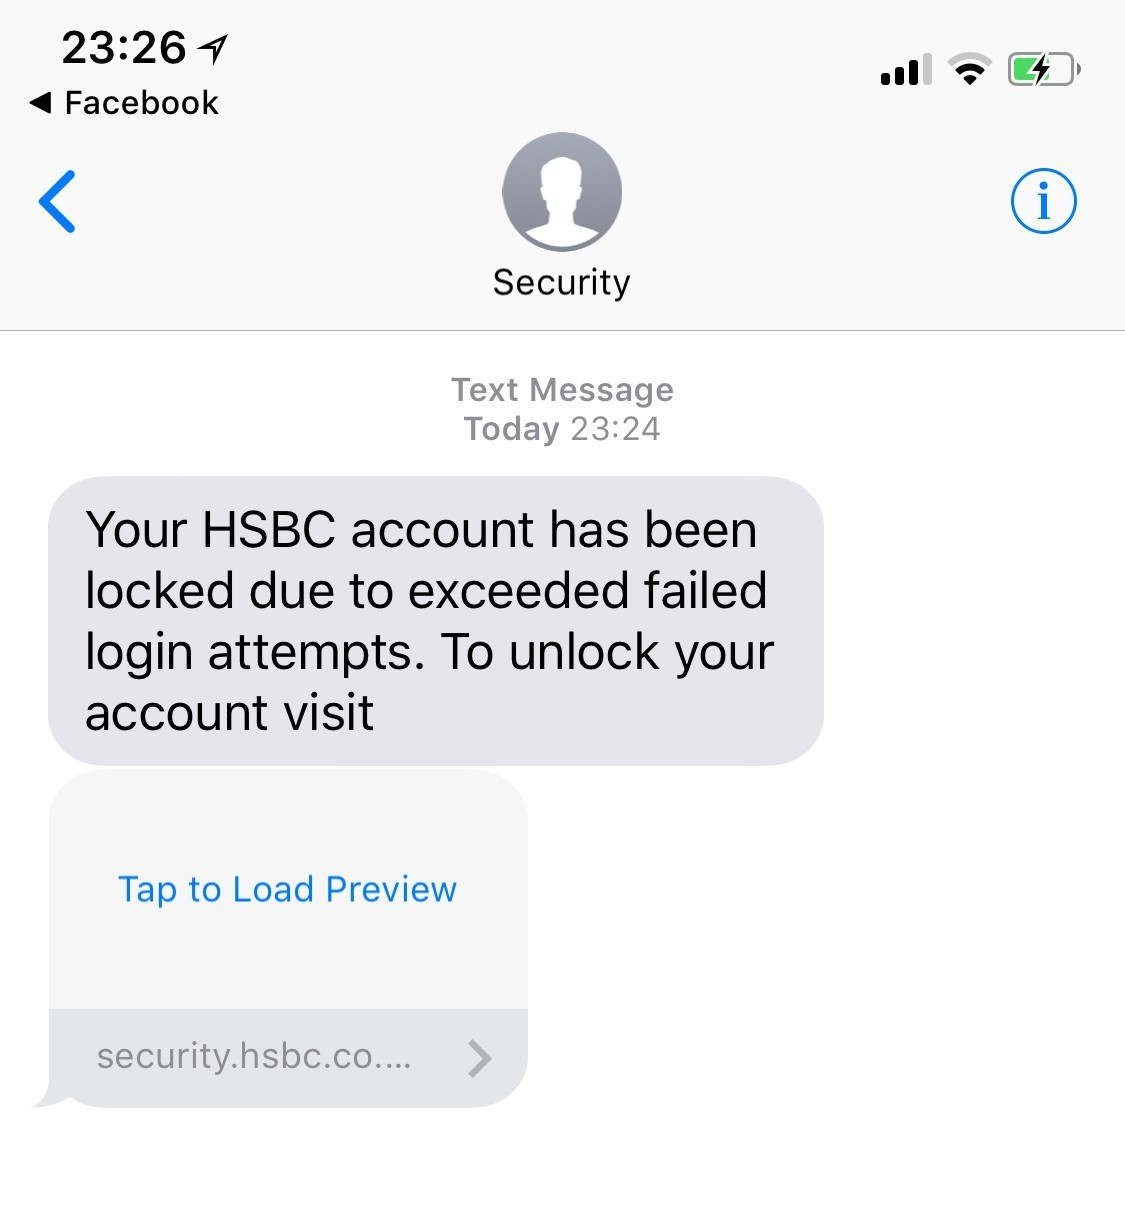 HSBC text scam be mindful - UK News In Pictures News